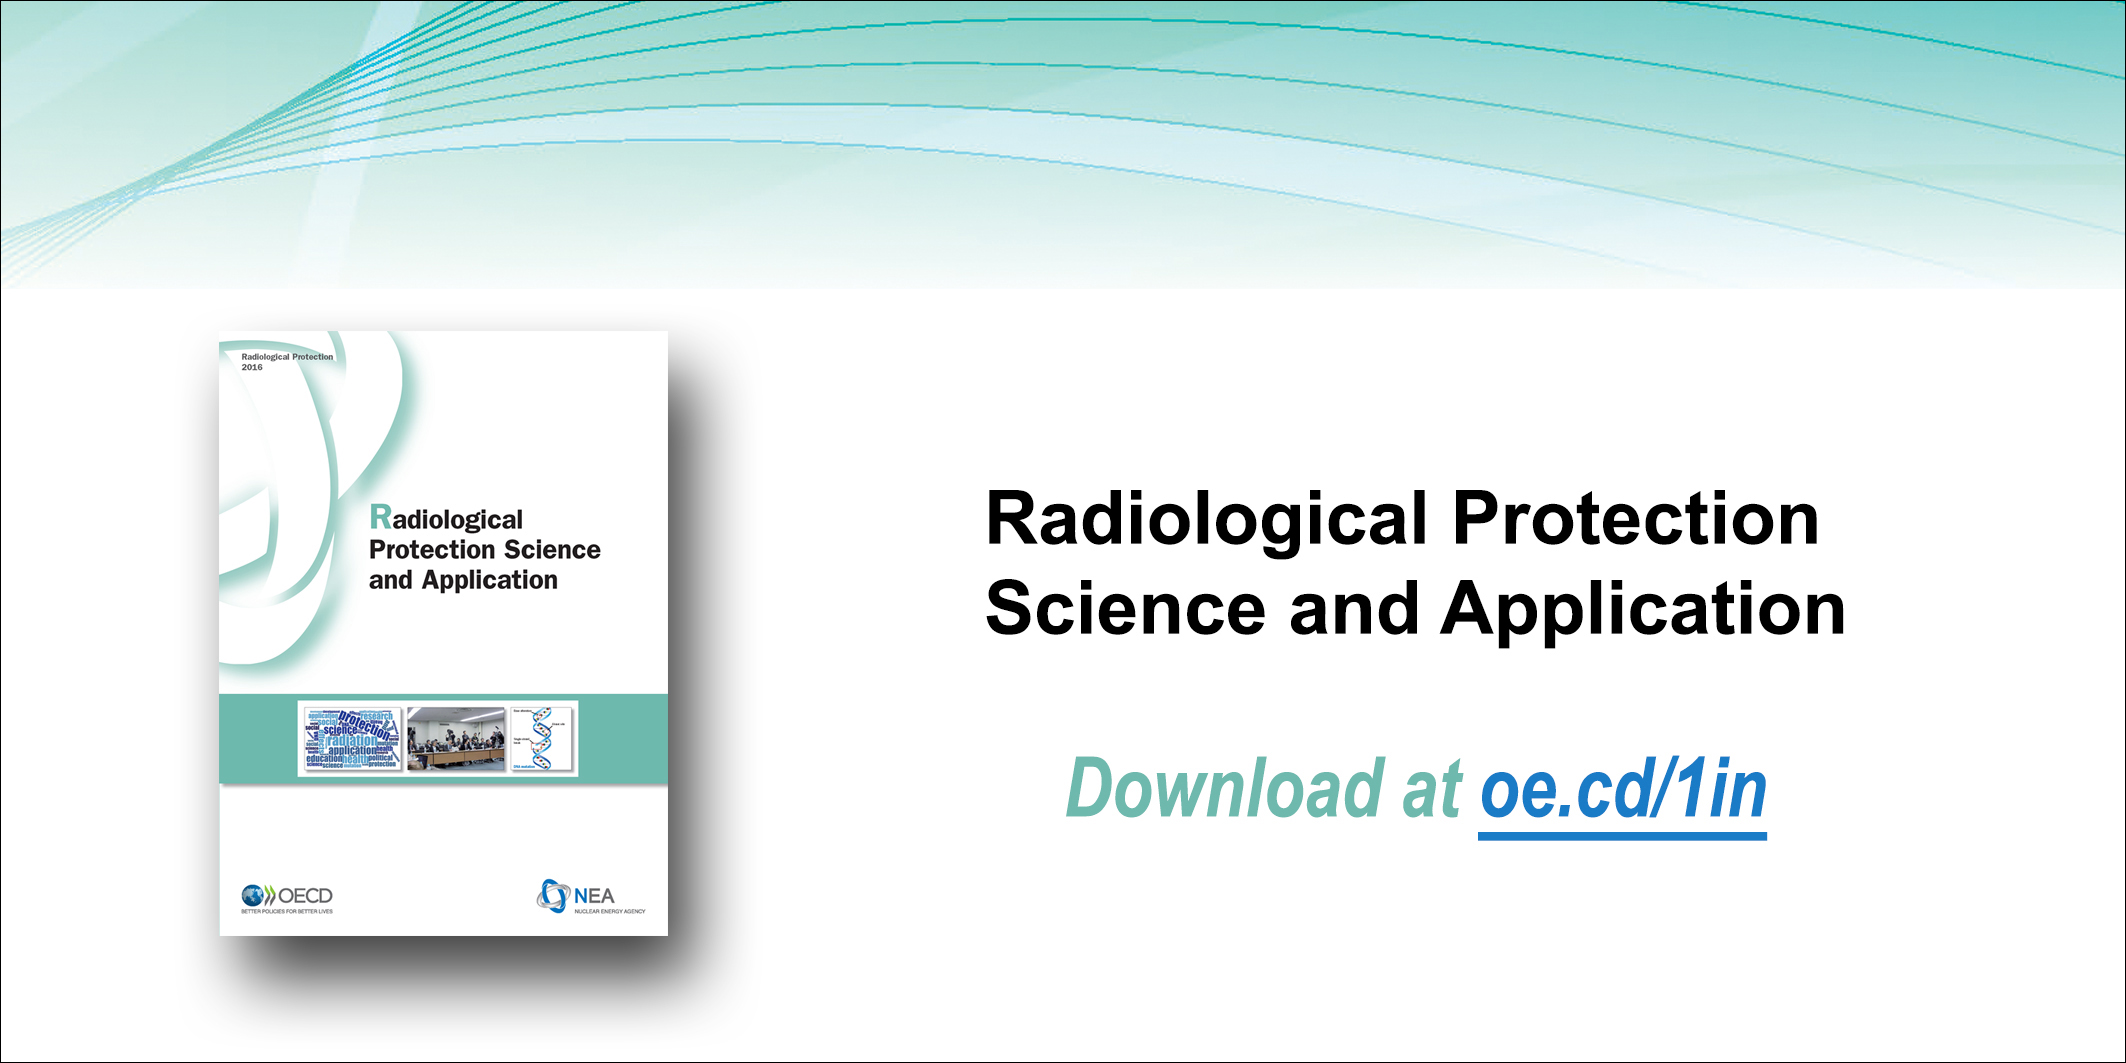 Radiological Protection Science and Application